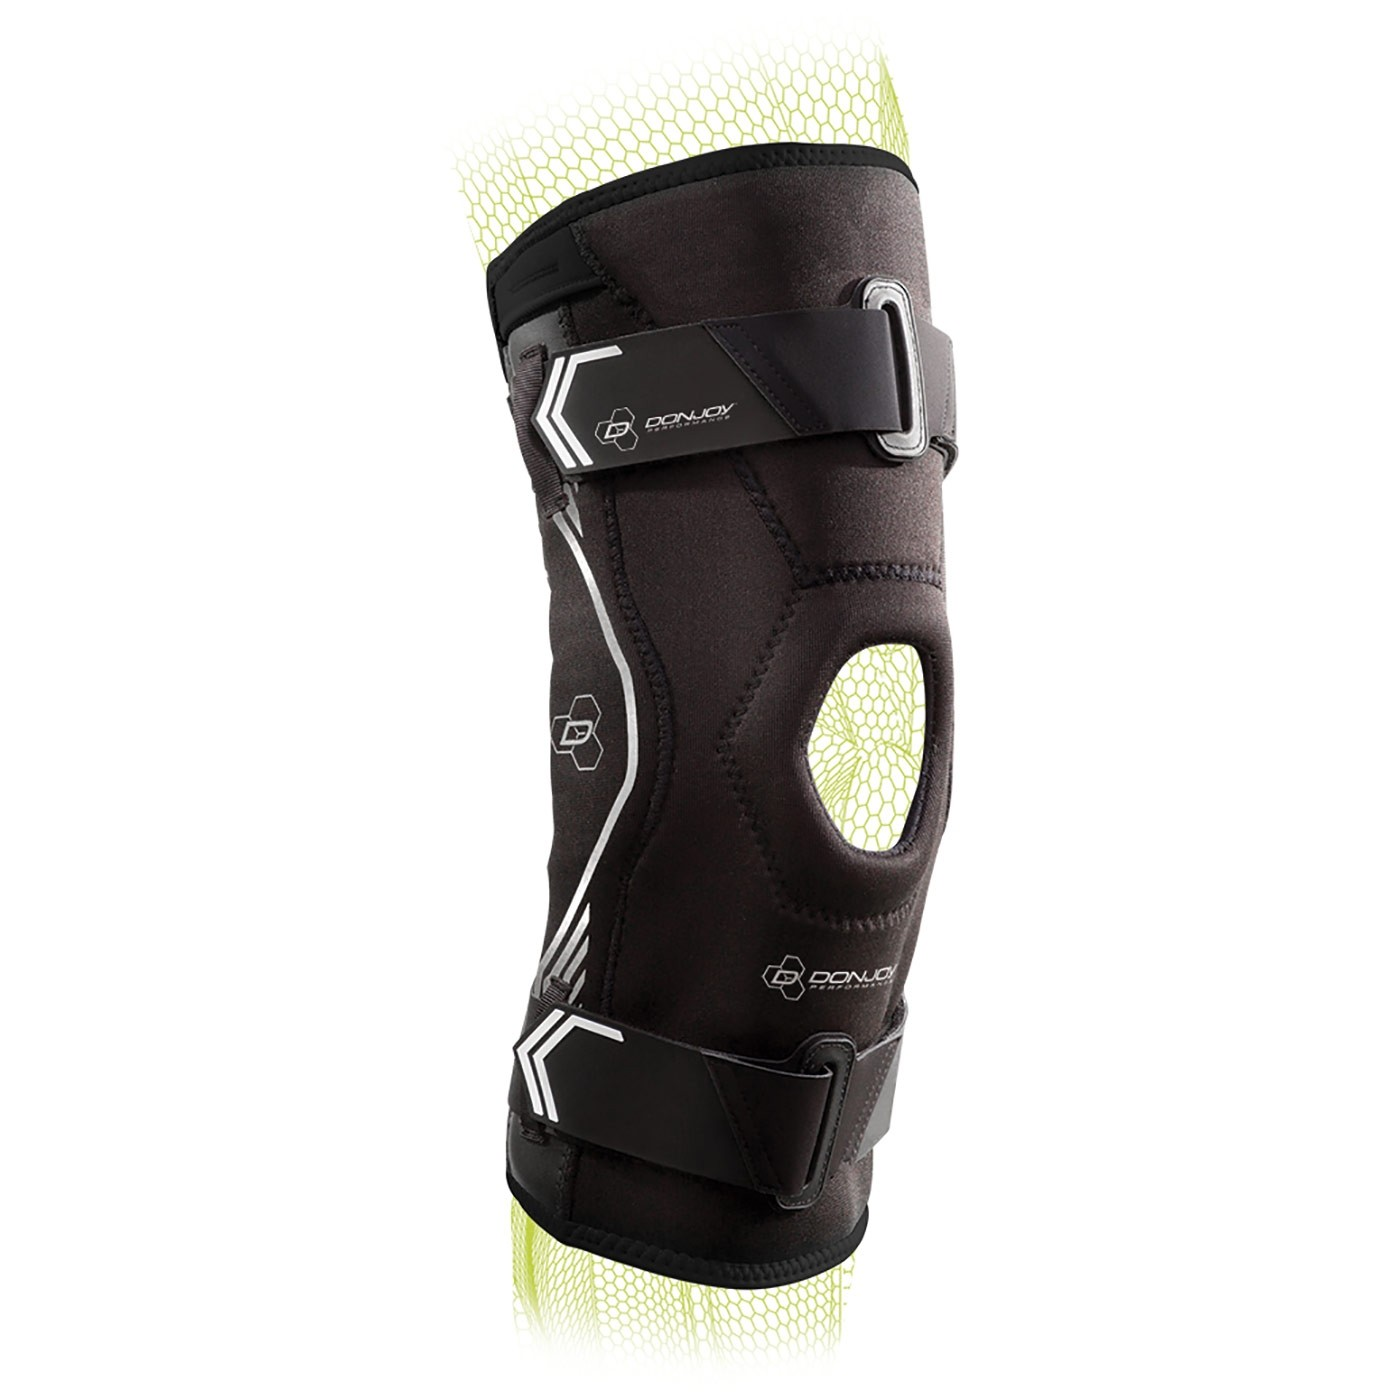 661f2cfd78 DonJoy Performance Bionic Drytex Knee Sleeve | DonJoyPerformance.com